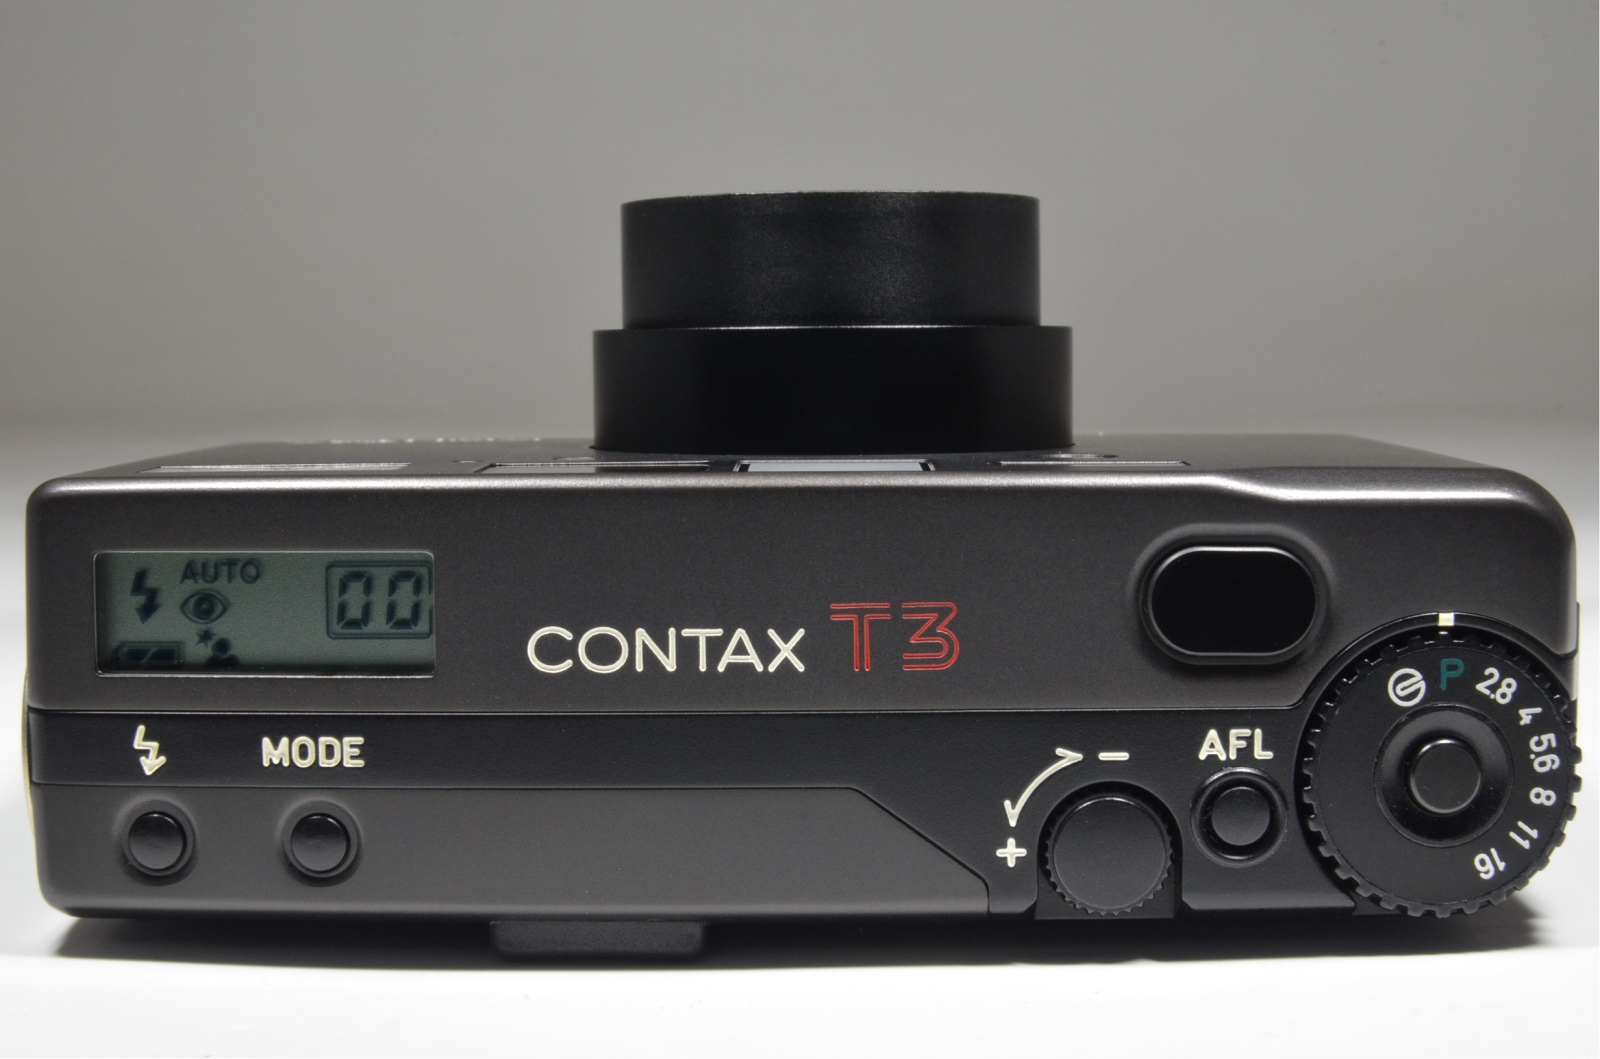 contax t3 data back titanium black 35mm p&s film camera